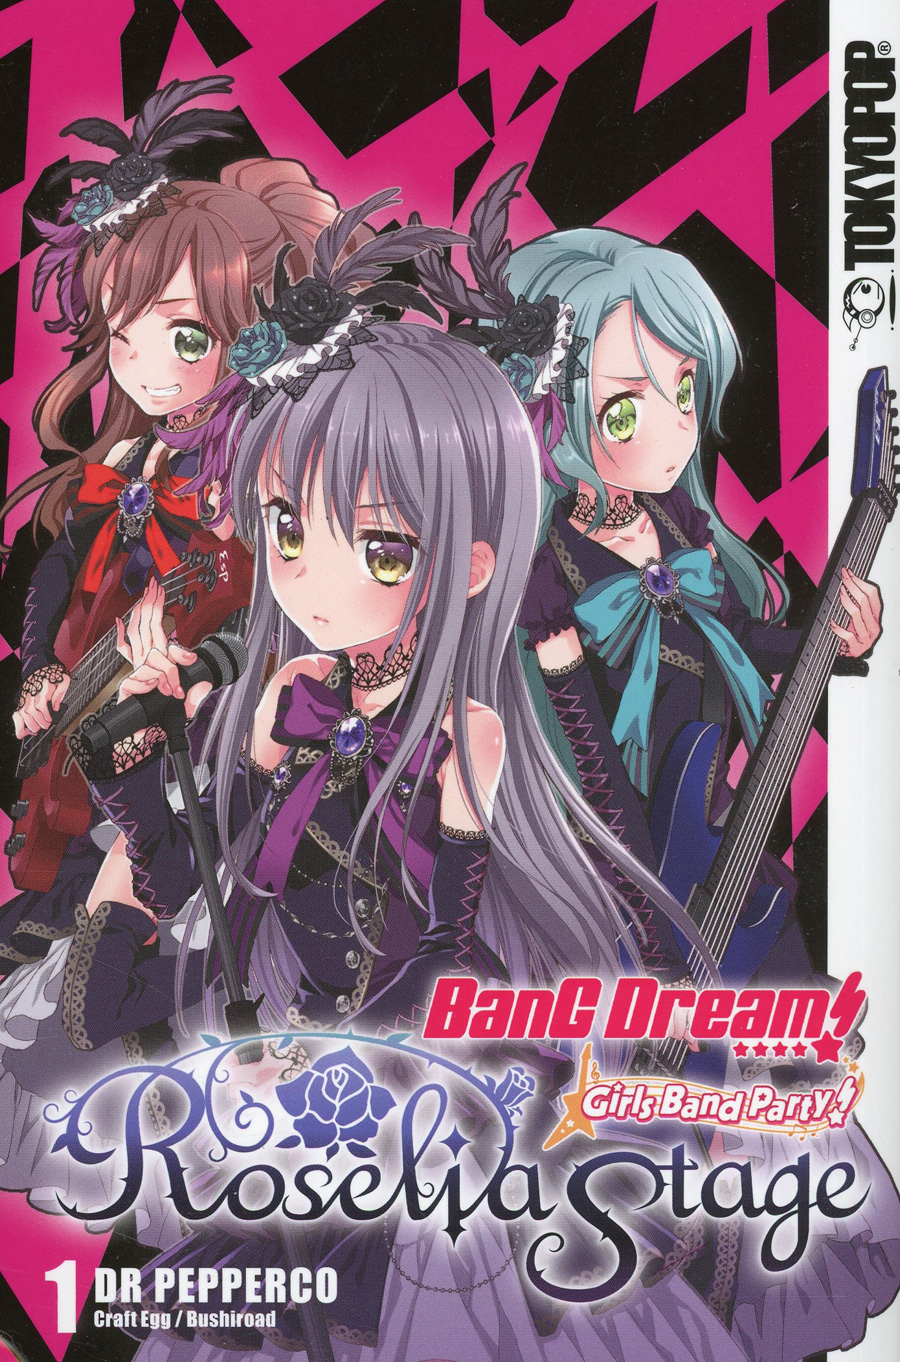 Bang Dream Girls Band Party Roselia Stage Vol 1 GN